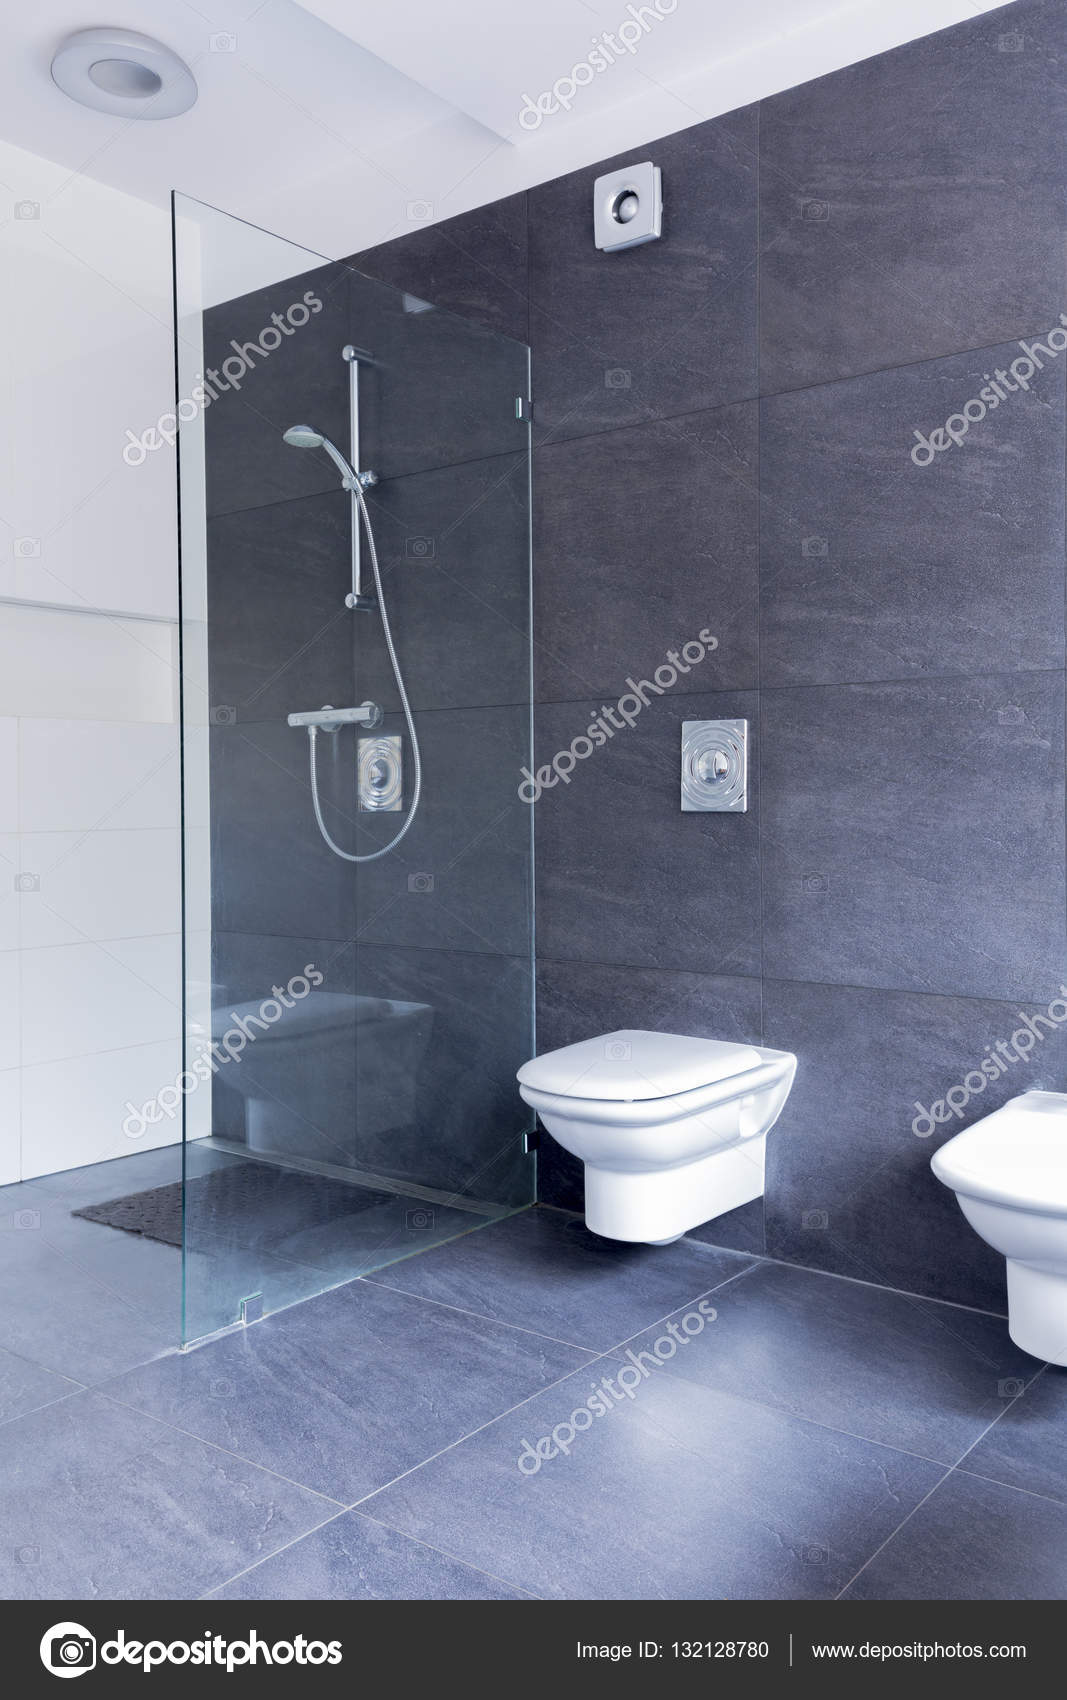 Shower enclosure Stock Photos, Royalty Free Shower enclosure Images ...